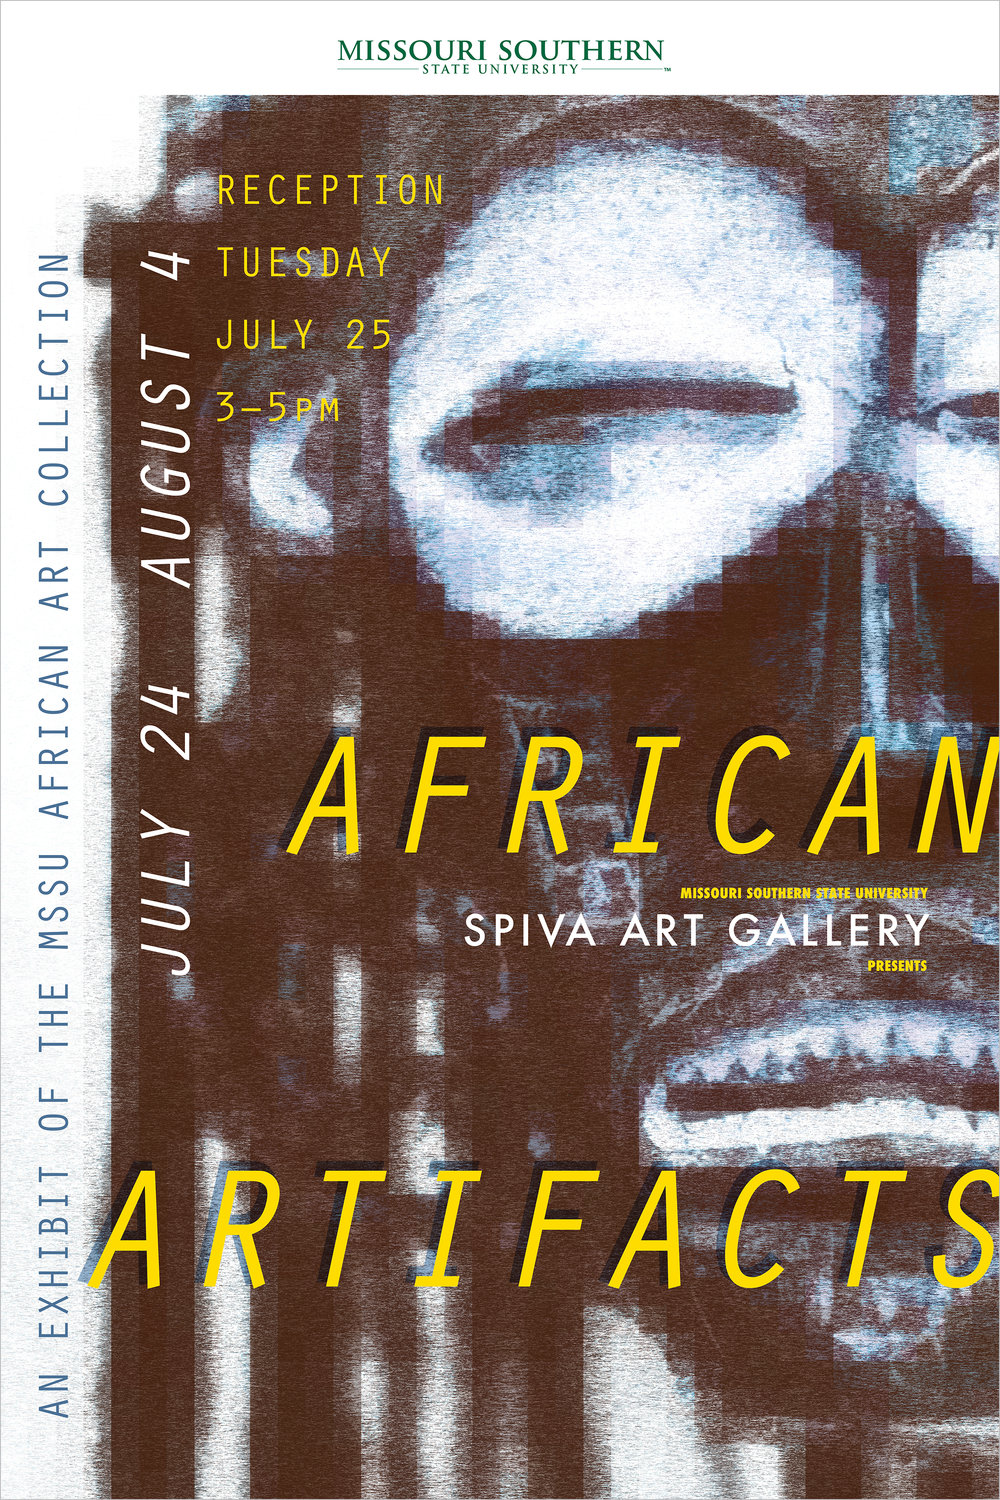 African Artifacts, MSSU African Art Collection